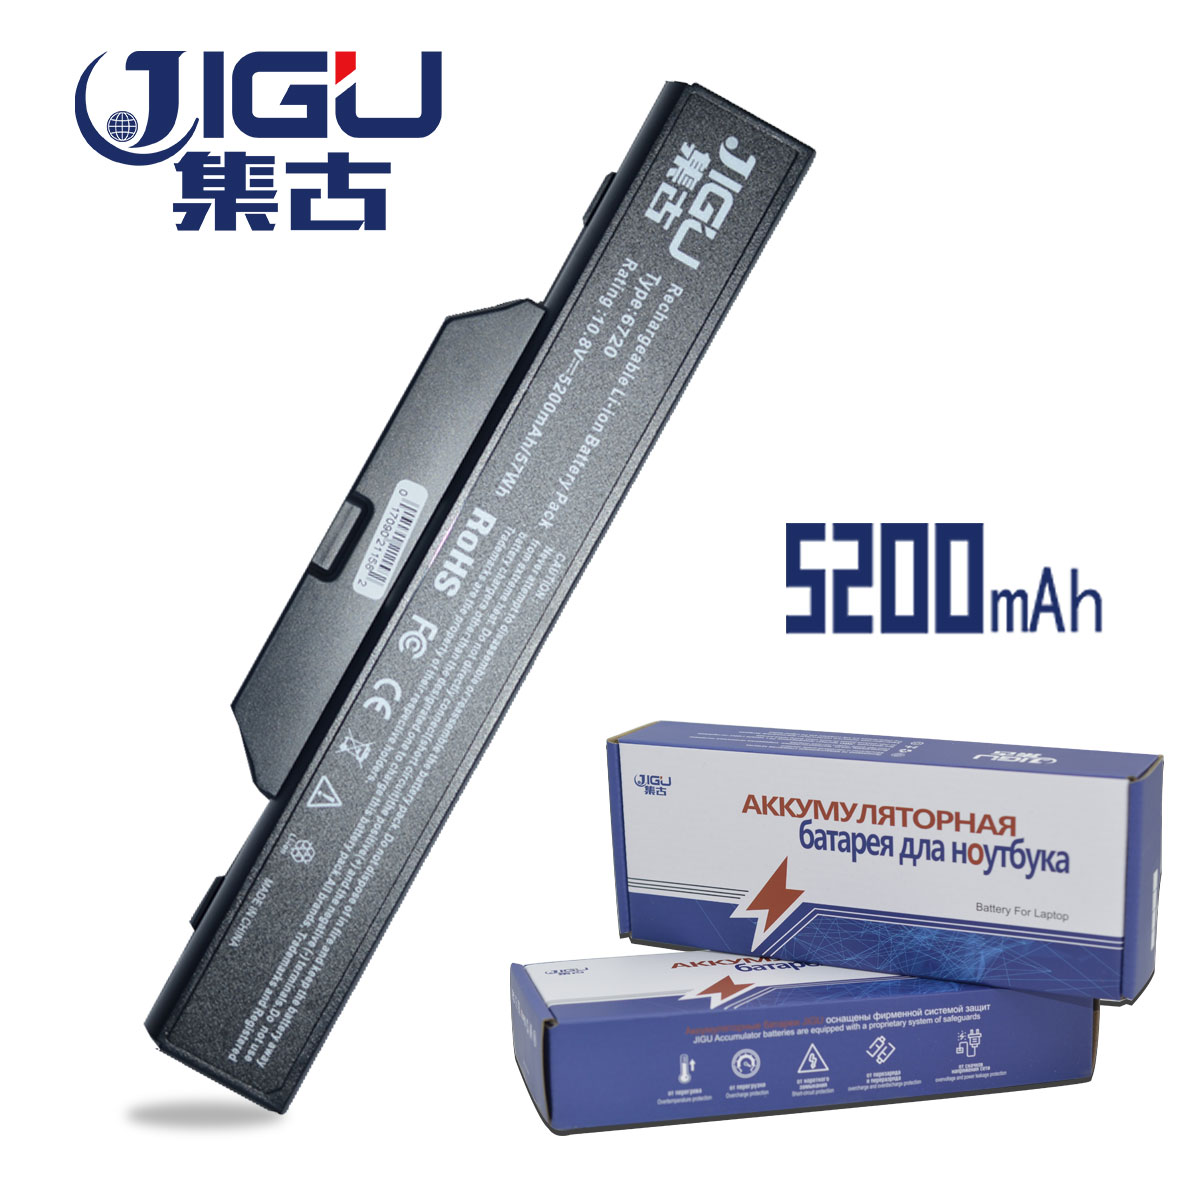 JIGU Replacement Laptop Battery For HP COMPAQ 510 610 615 6720 6735 CT 6730s 6820 6830 S 451086-161 451568-001